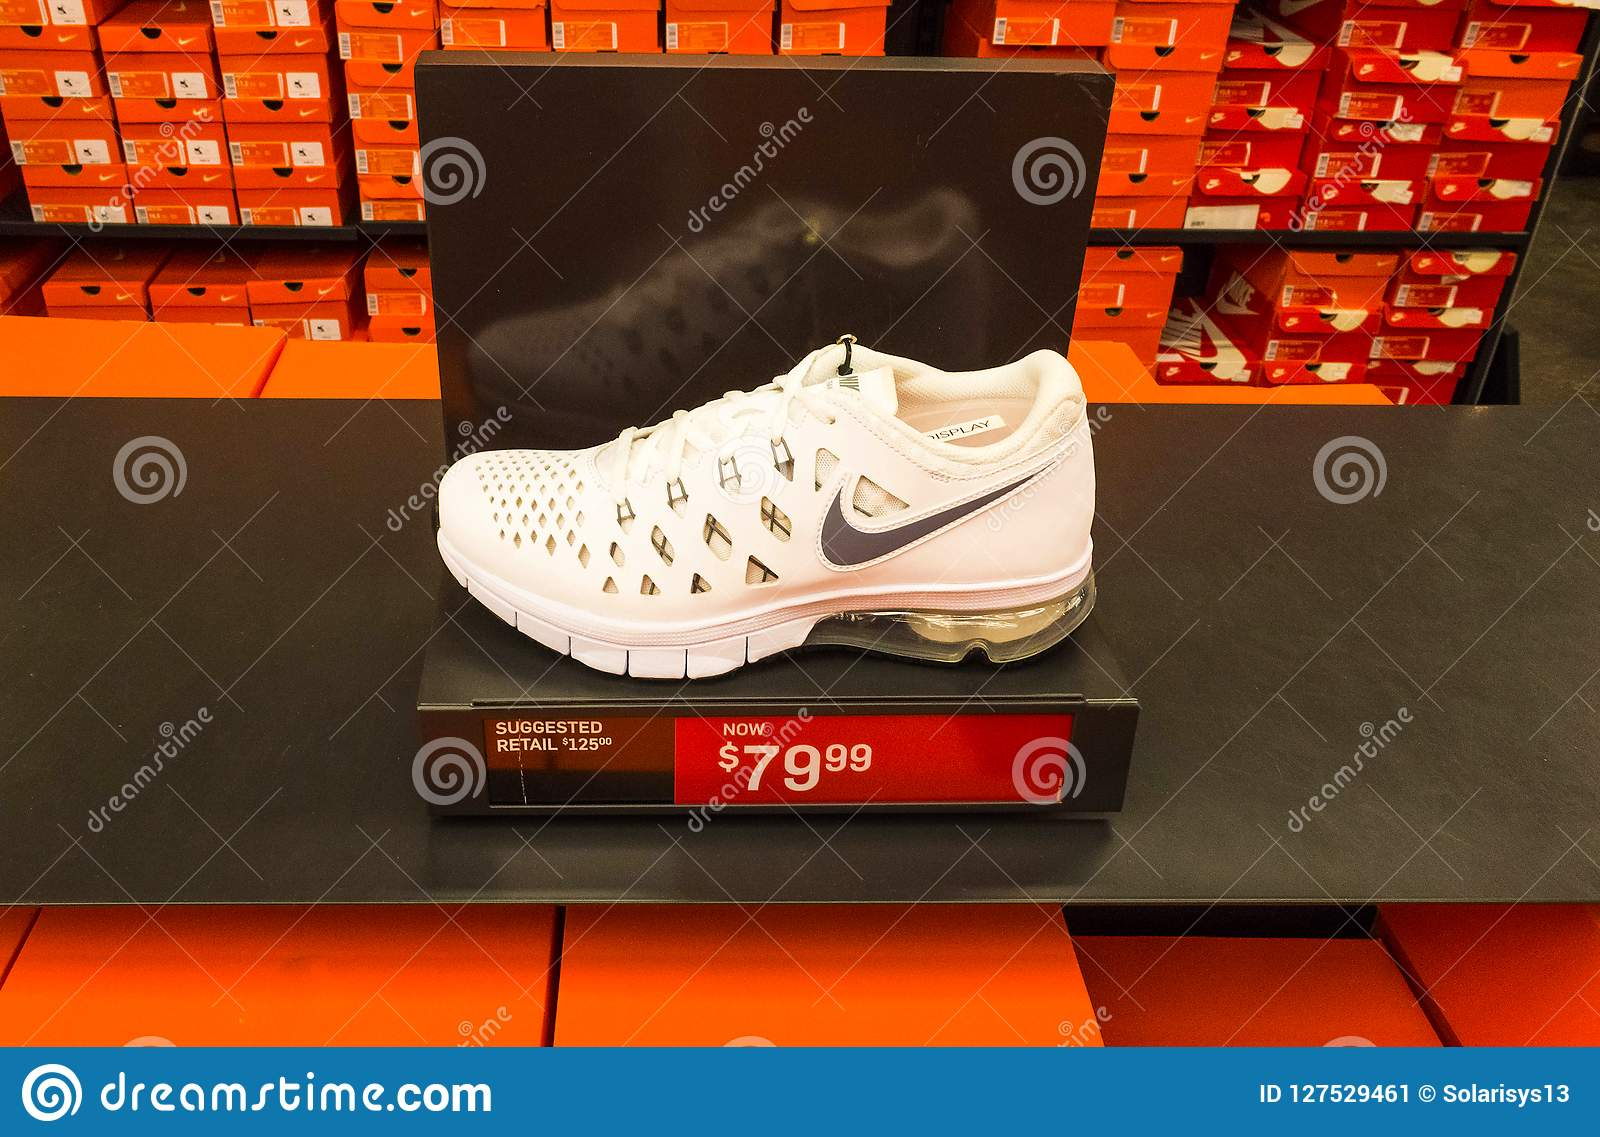 Nike Boxes Stacked OrlandoUsa 82018Background May Shoes Of zVGqUSMp